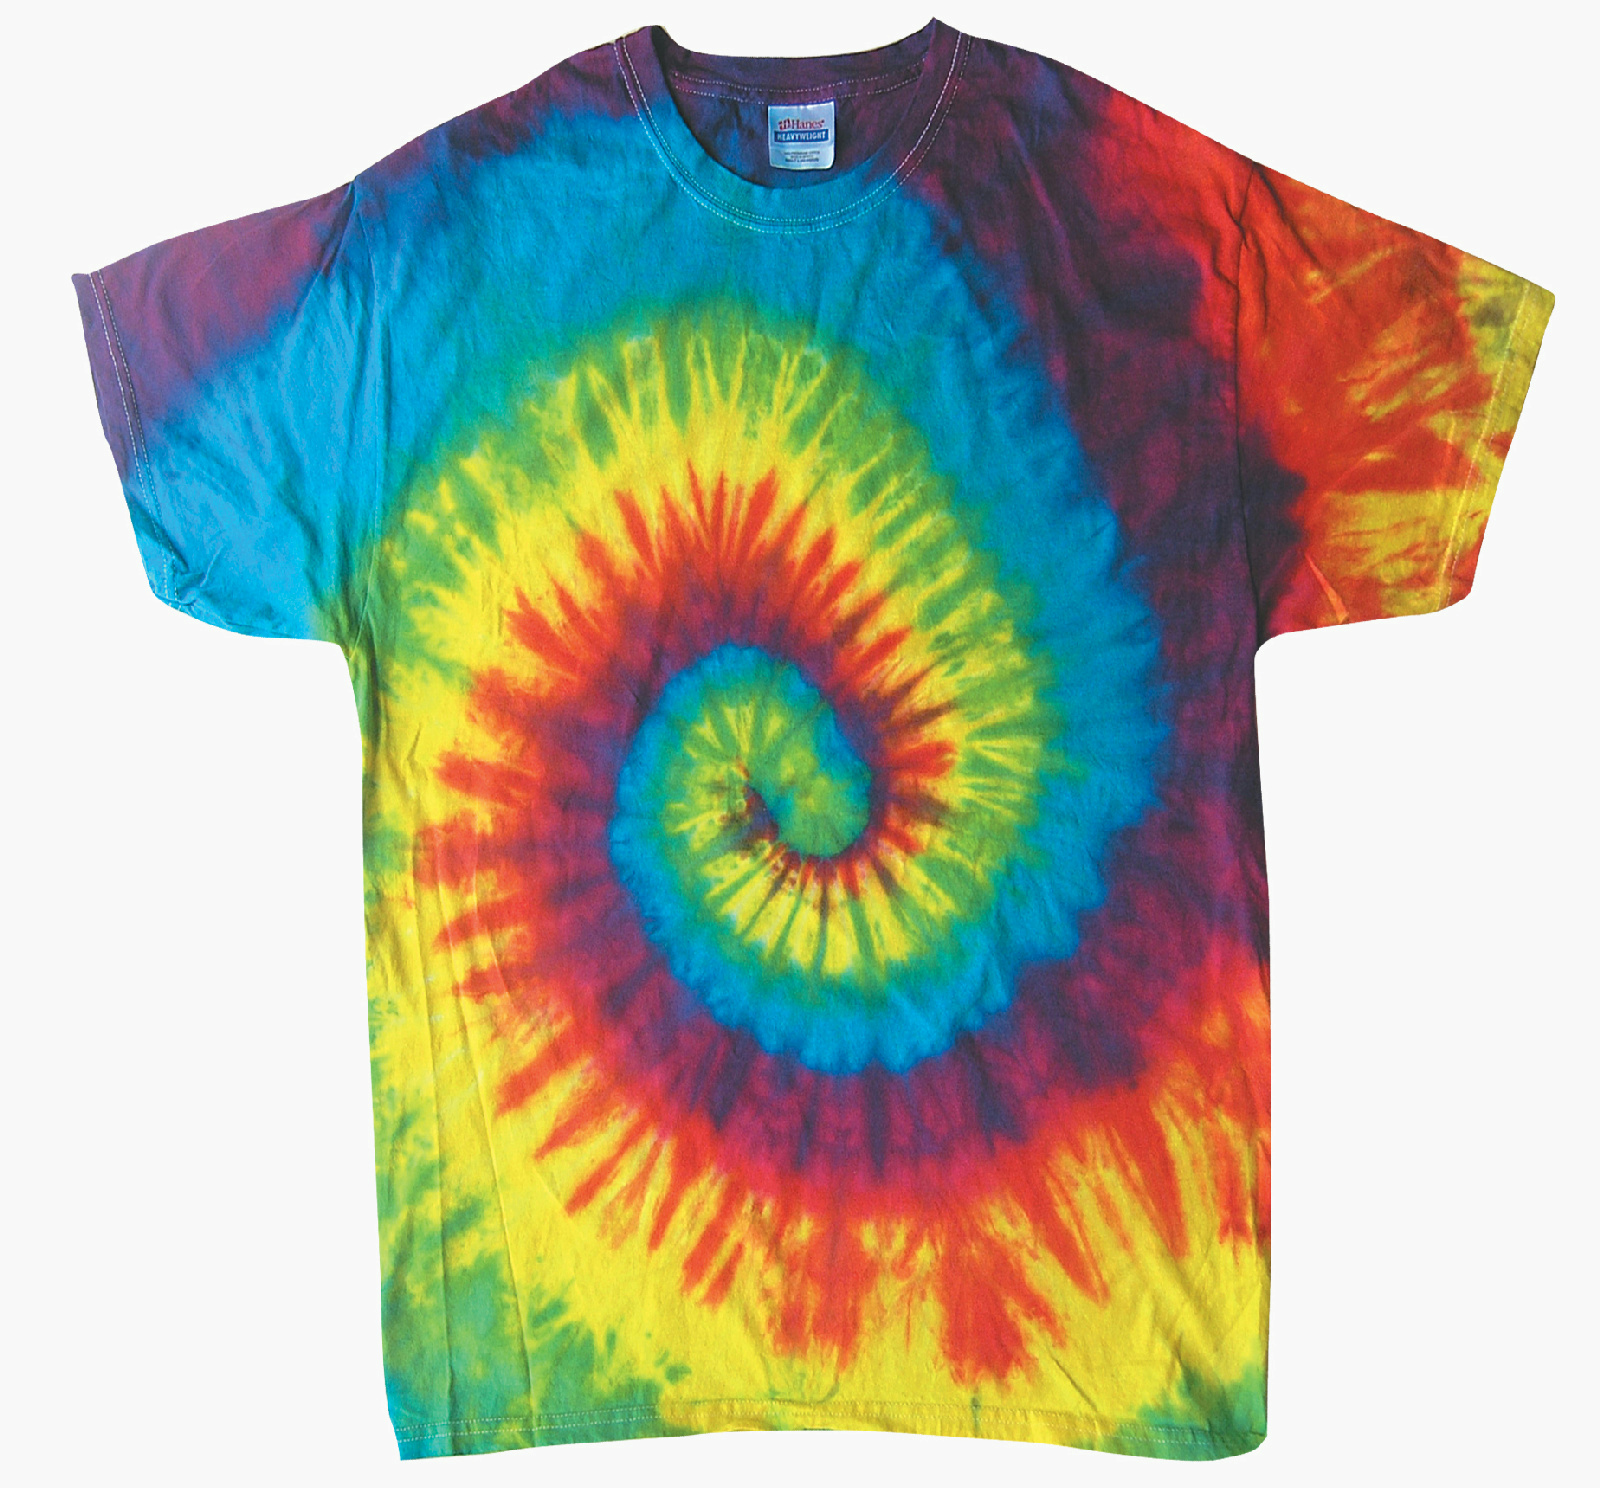 da667d5d660 Adult Tie Dye Short Sleeve T Shirt New Reactive Rainbow Multi Color Spiral  Small